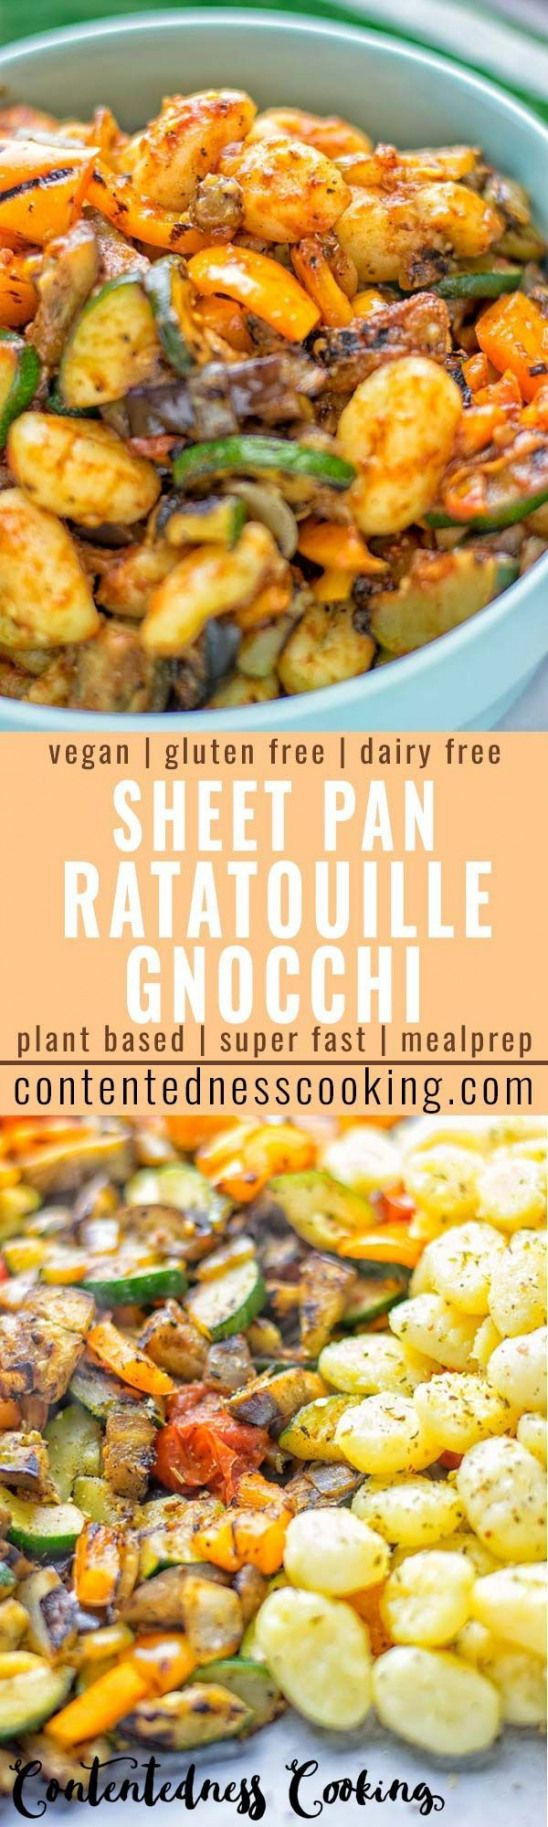 Your favorite recipe source for healthy food [Paleo, Vegan, Gluten free] This Sheet Pan Ratatouille Gnocchi are super easy to make and naturally vegan gluten free. Its made on a sheet pan which is a breeze for dinner lunch meal prep and work lunches. Try it now and the whole family will love it.